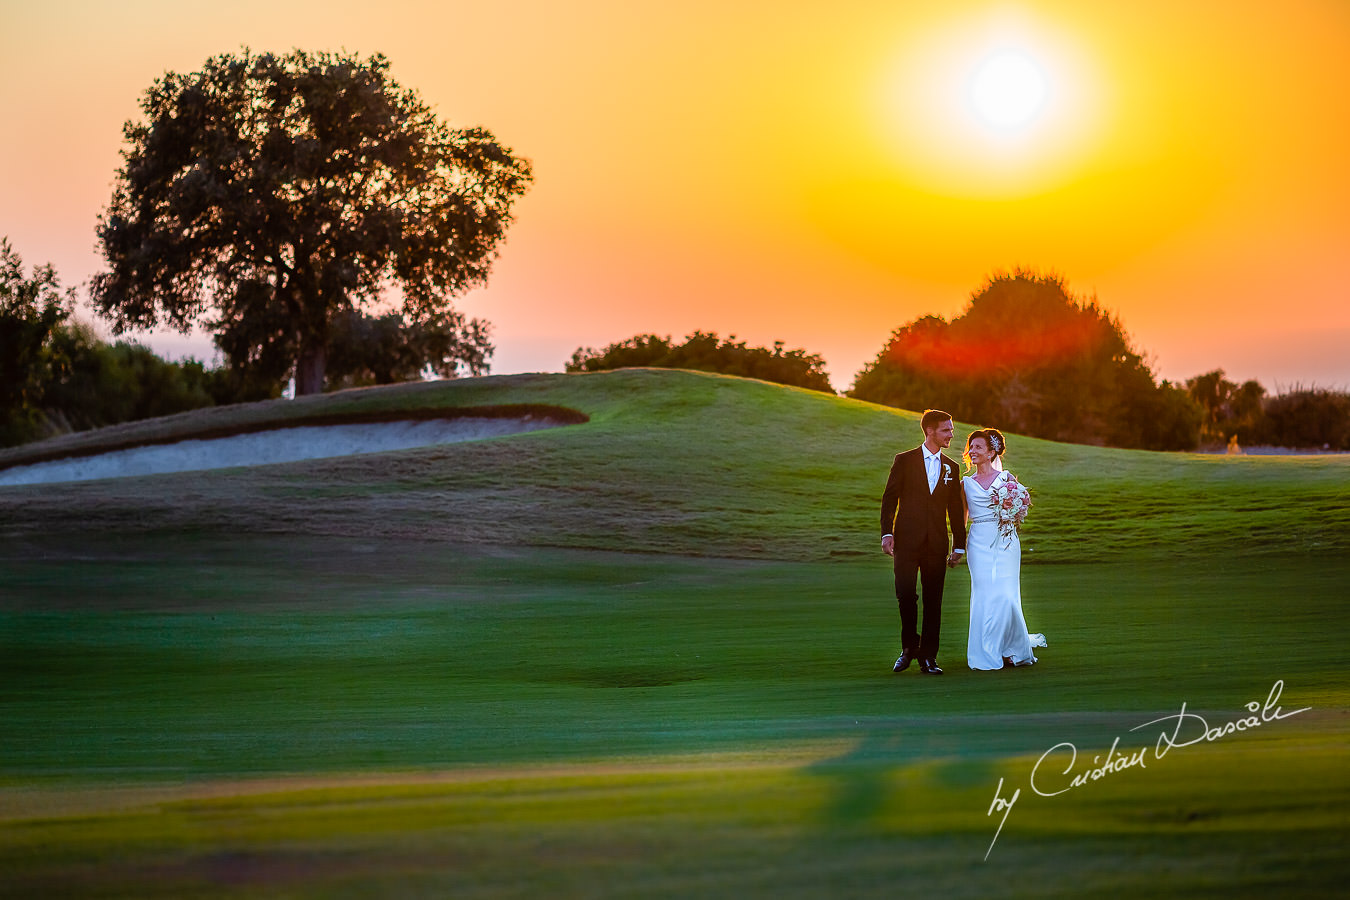 Sunset photo shoot moments captured by Cristian Dascalu during an elegant Aphrodite Hills Wedding in Cyprus.